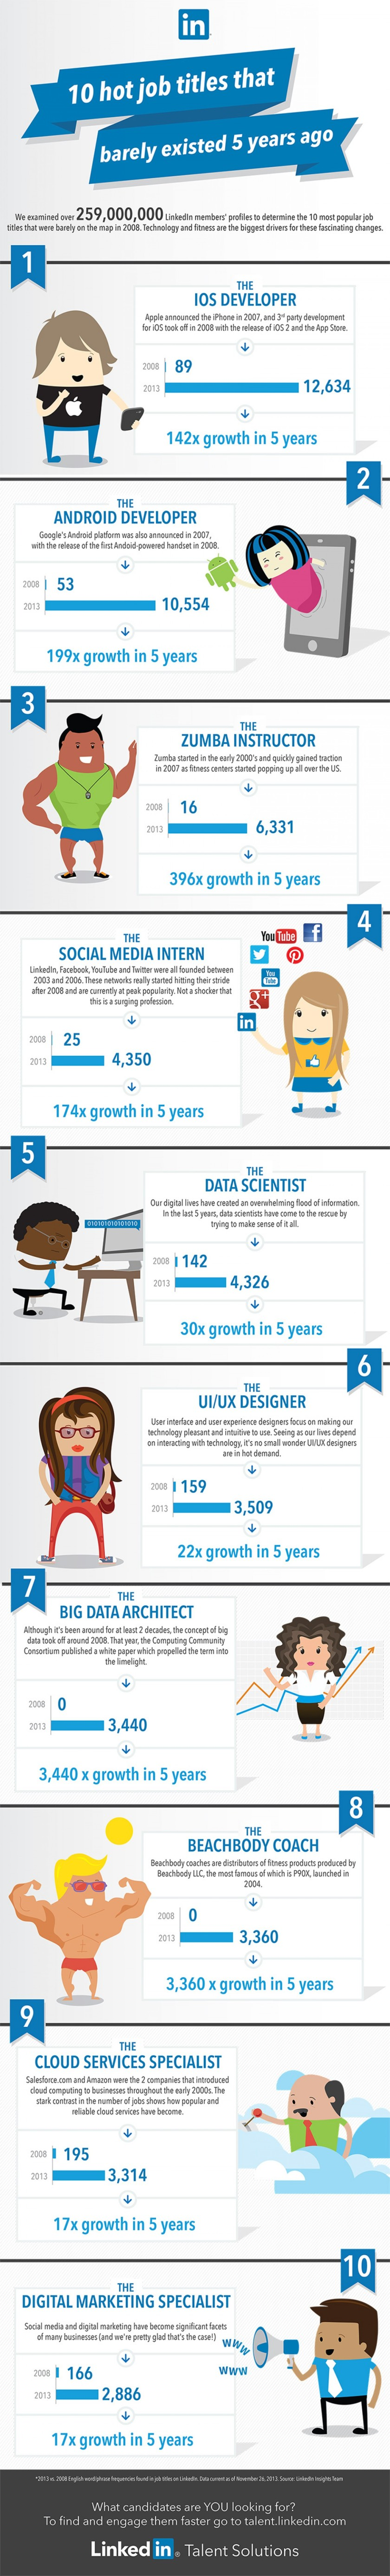 top-10-job-titles-that-didnt-exist-5-years-ago_52cae9af44587_w1500